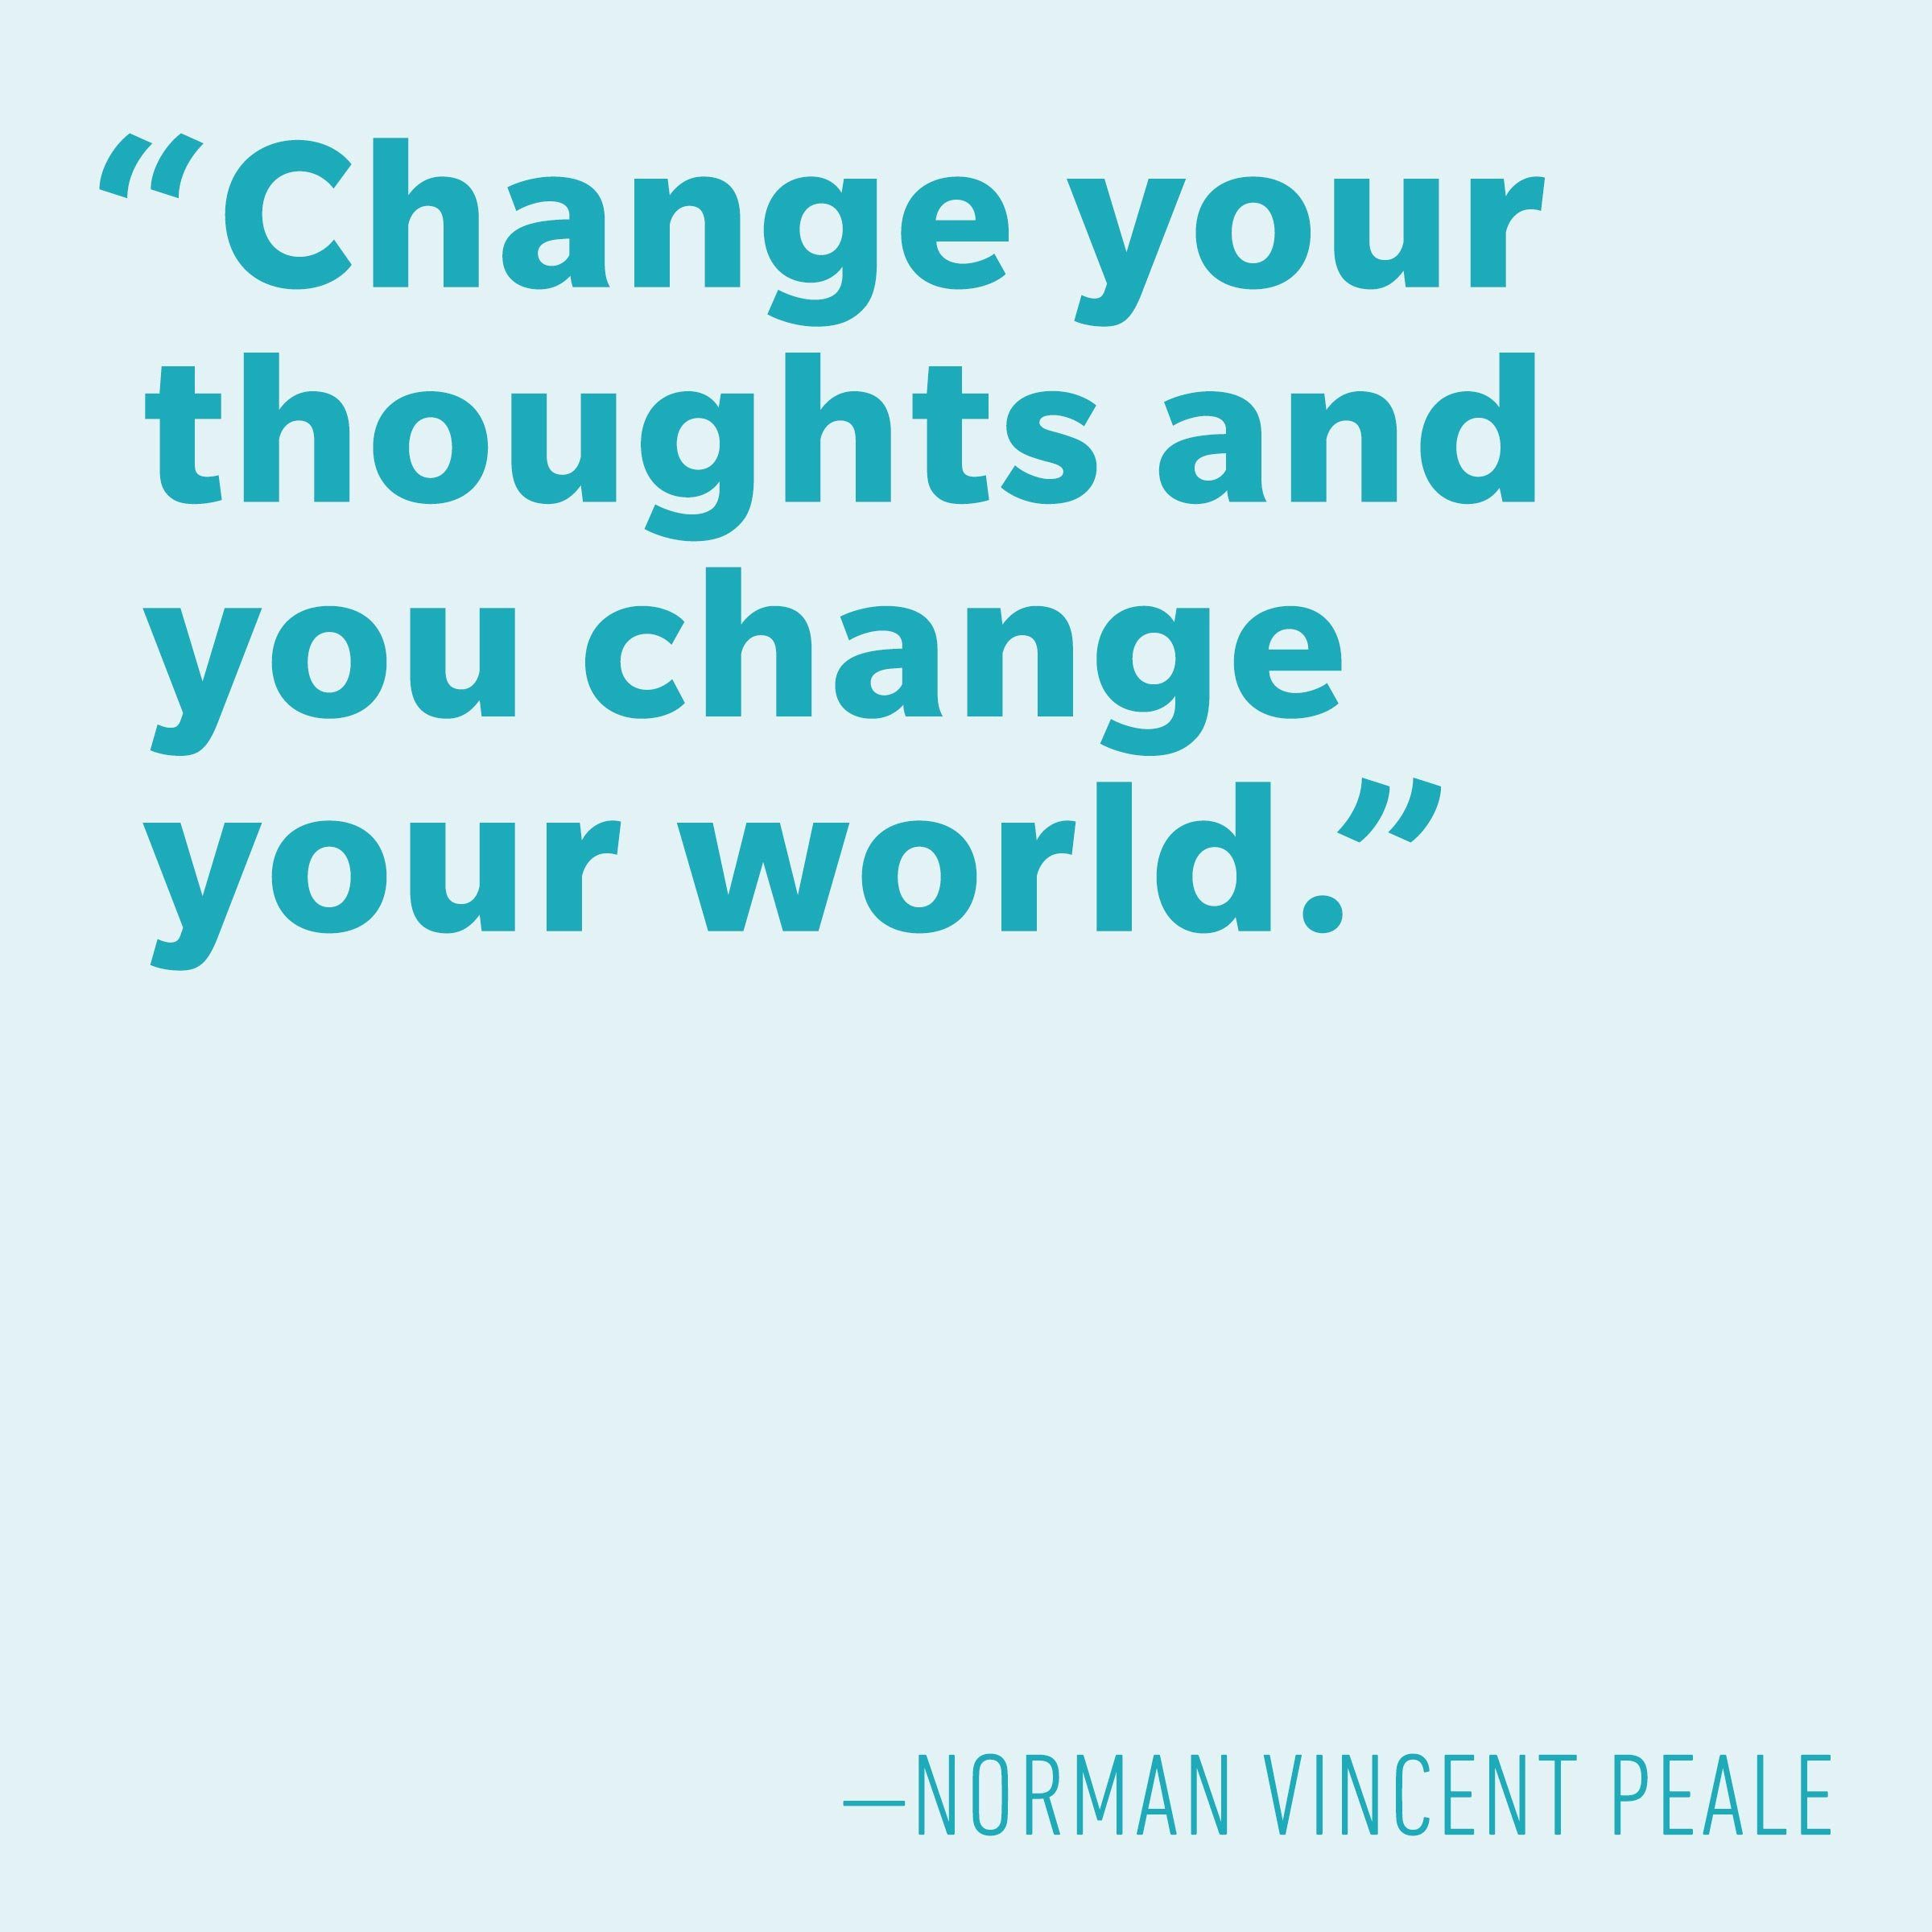 Motivational quotes - Norman Vincent Peale